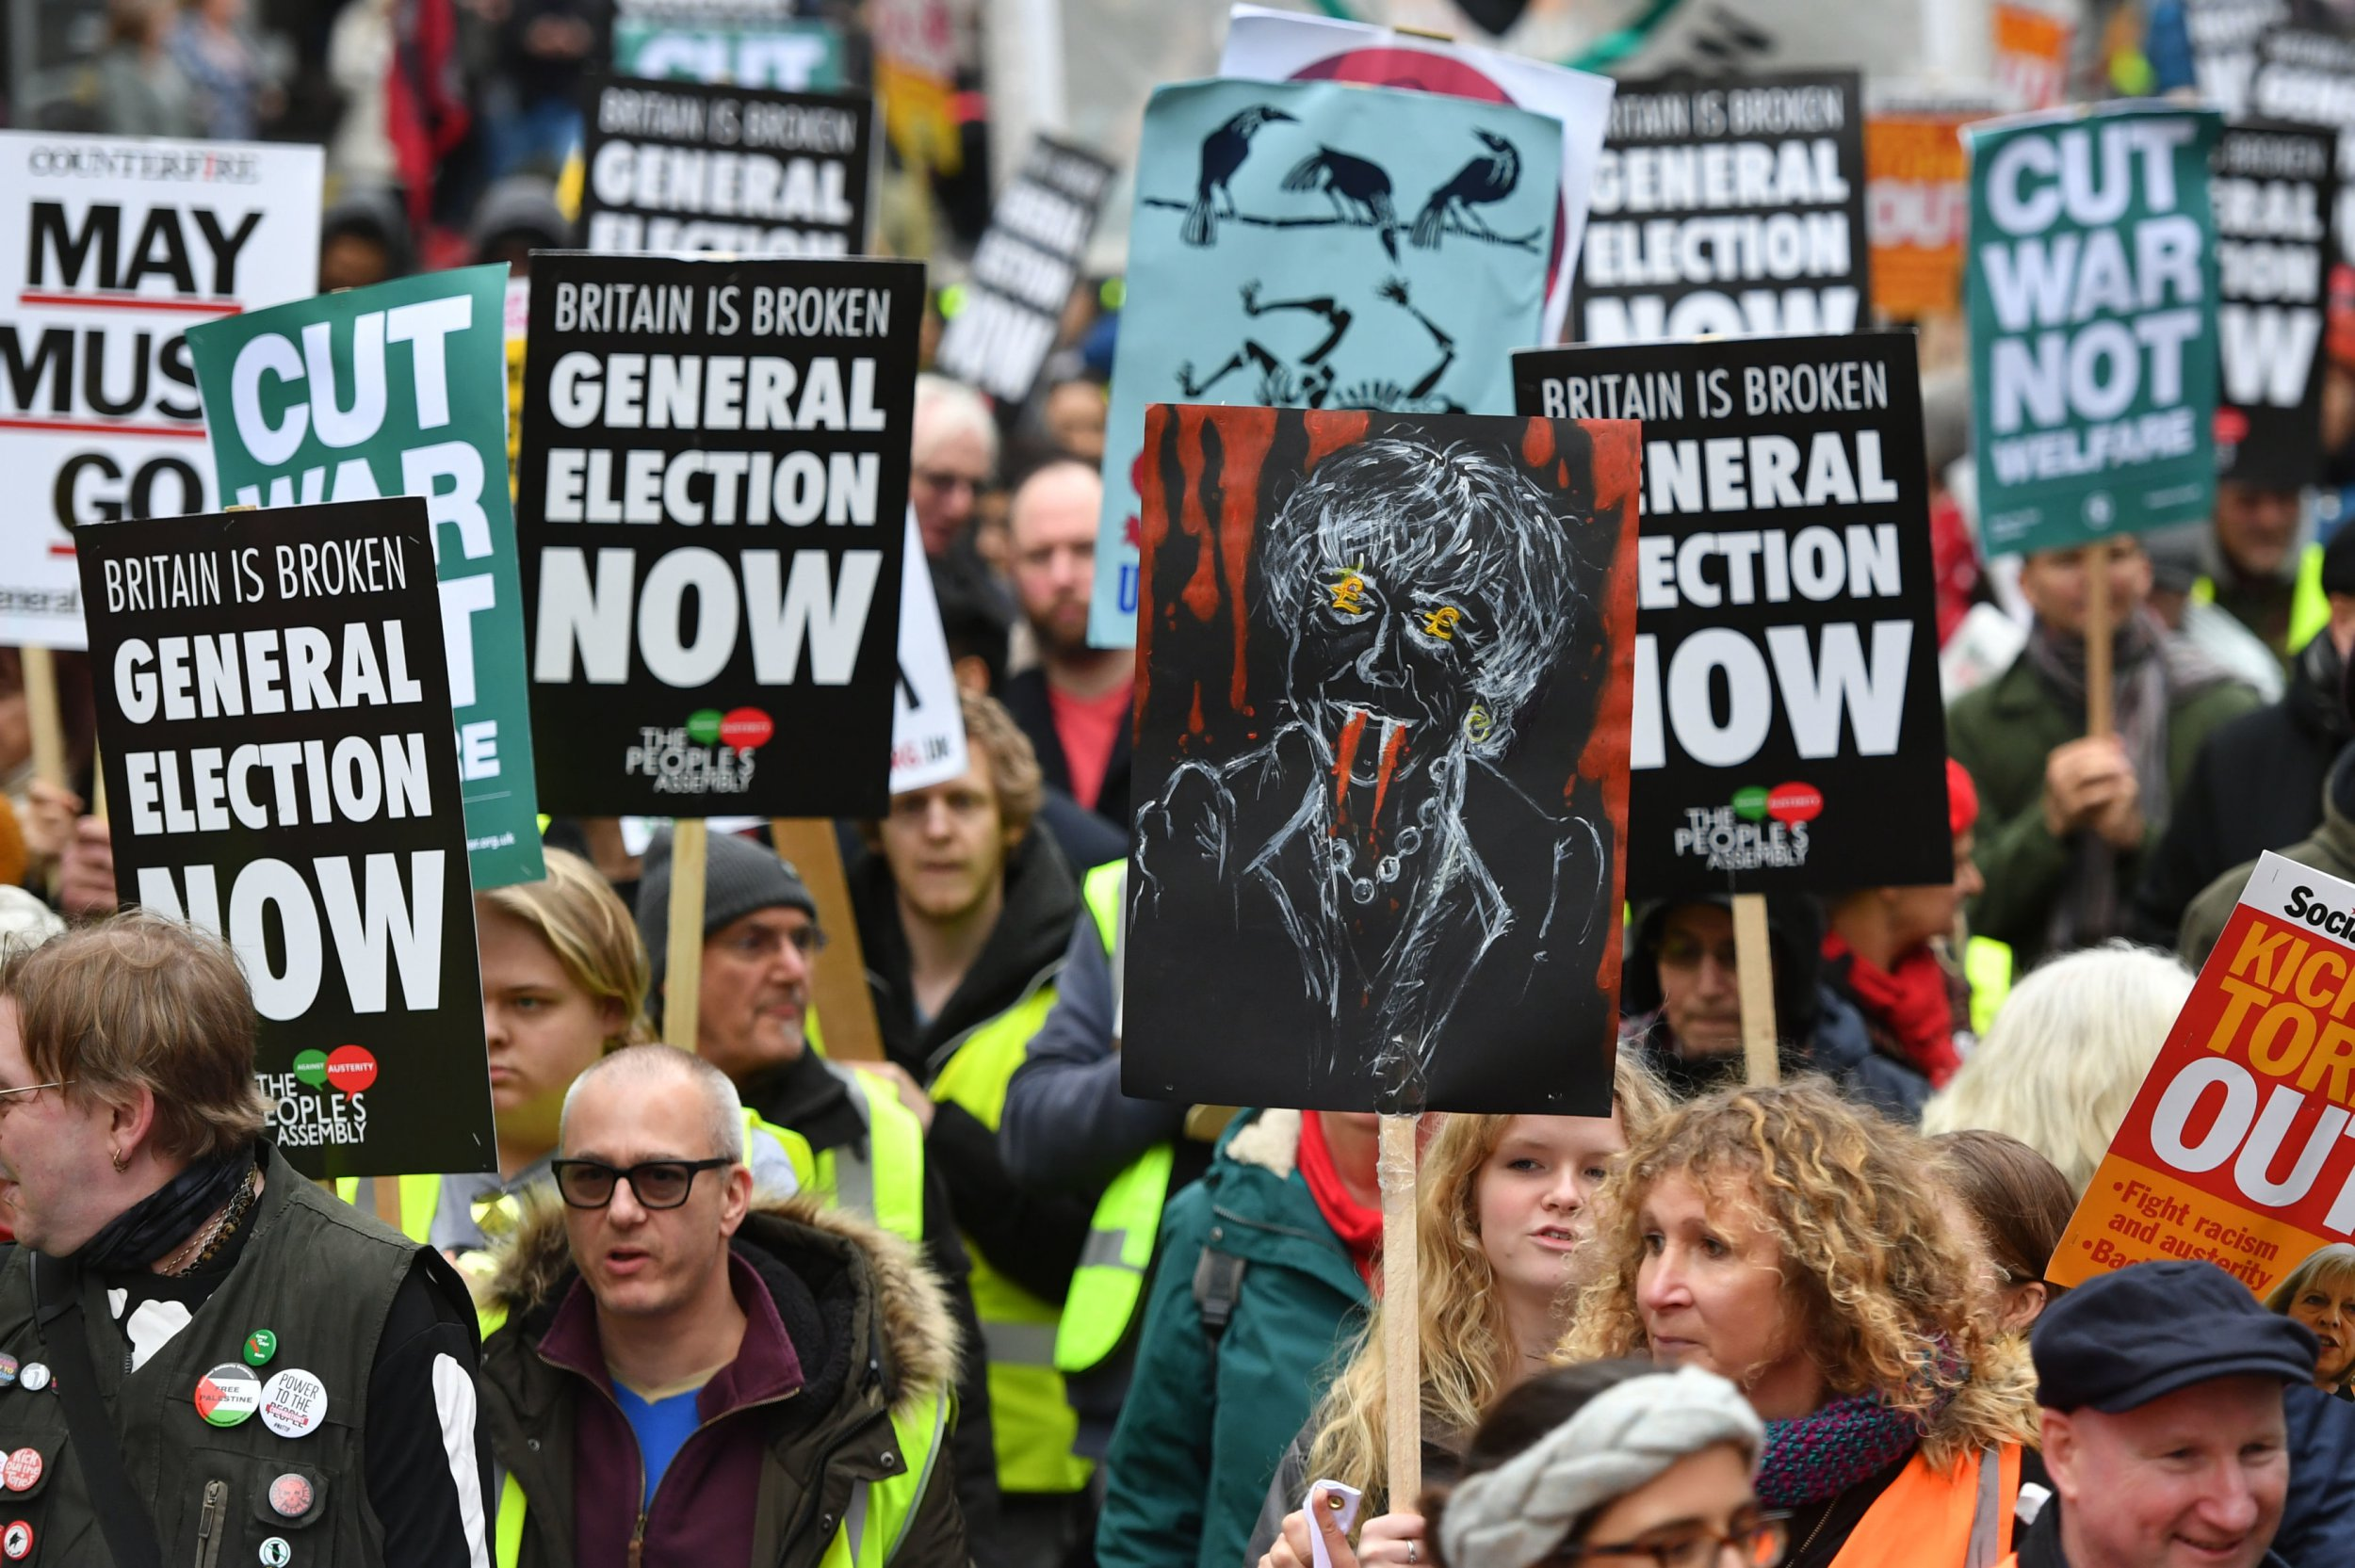 """People's Assembly Against Austerity stage a """"yellow vest""""-inspired rally in central London calling for a general election. PRESS ASSOCIATION Photo. Picture date: Saturday January 12, 2019. See PA story PROTEST Rally. Photo credit should read: Dominic Lipinski/PA Wire"""